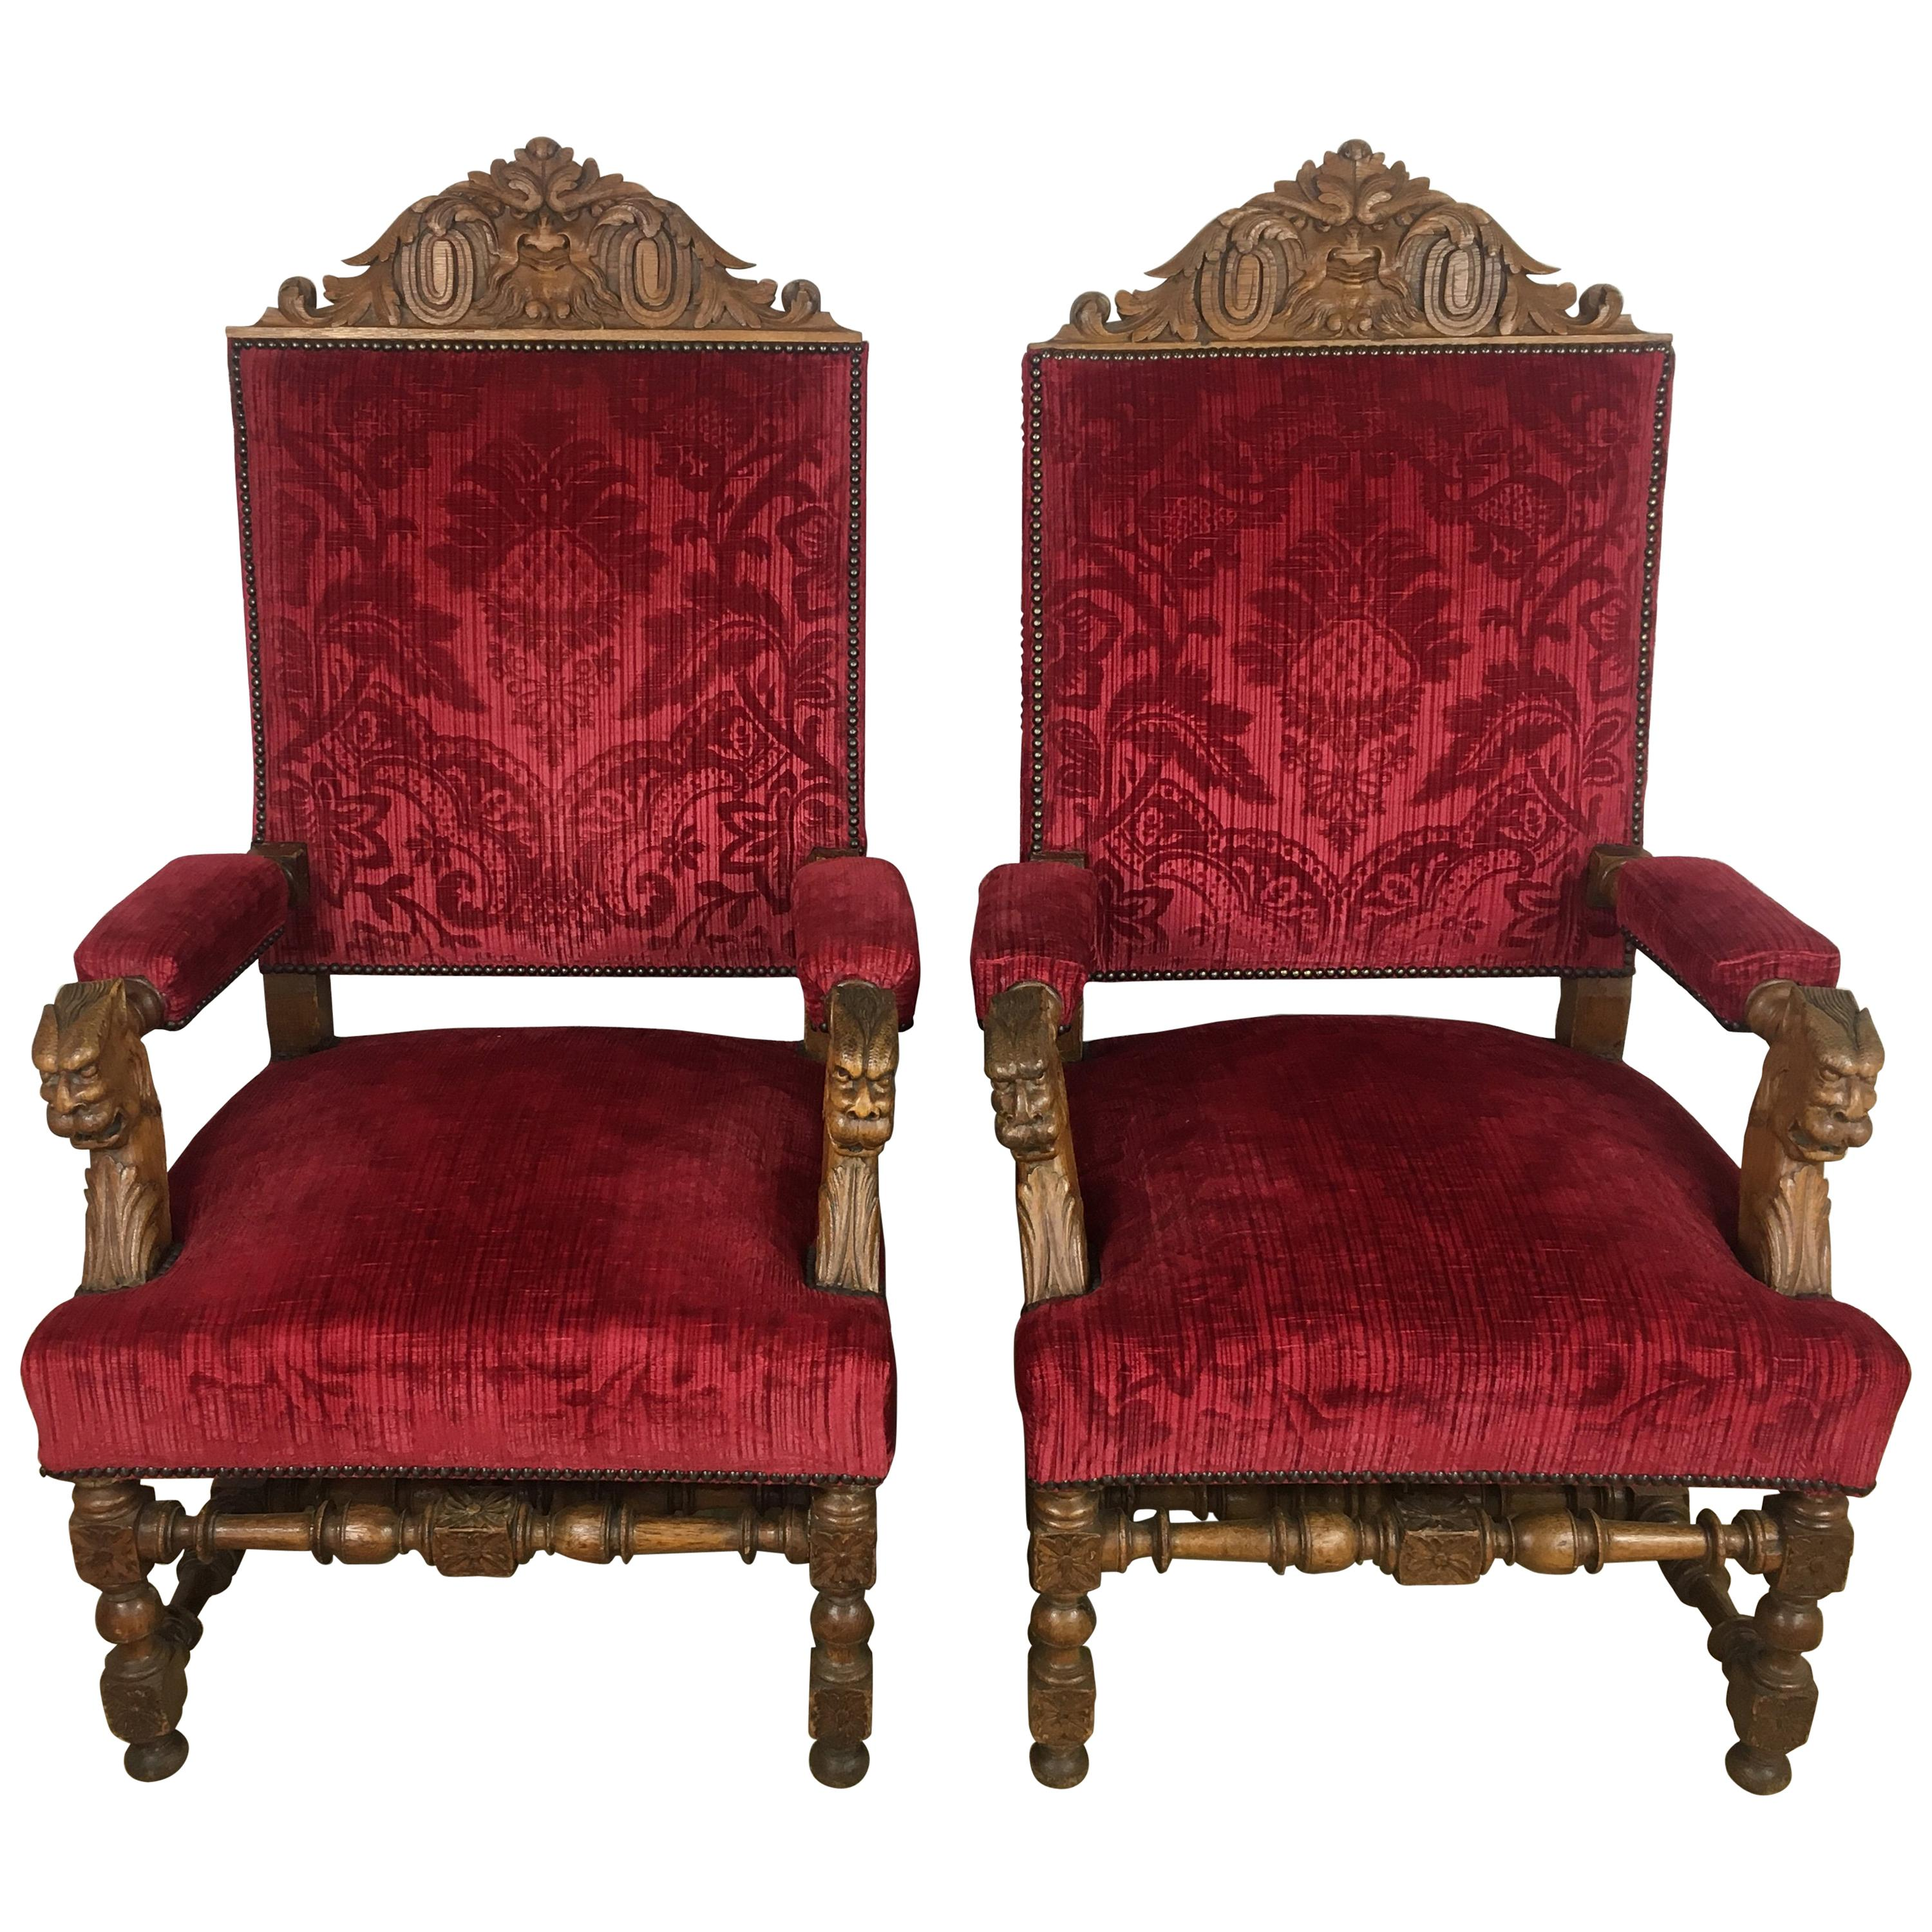 Pair of 19th Century French Louis XIII Style Throne Armchairs